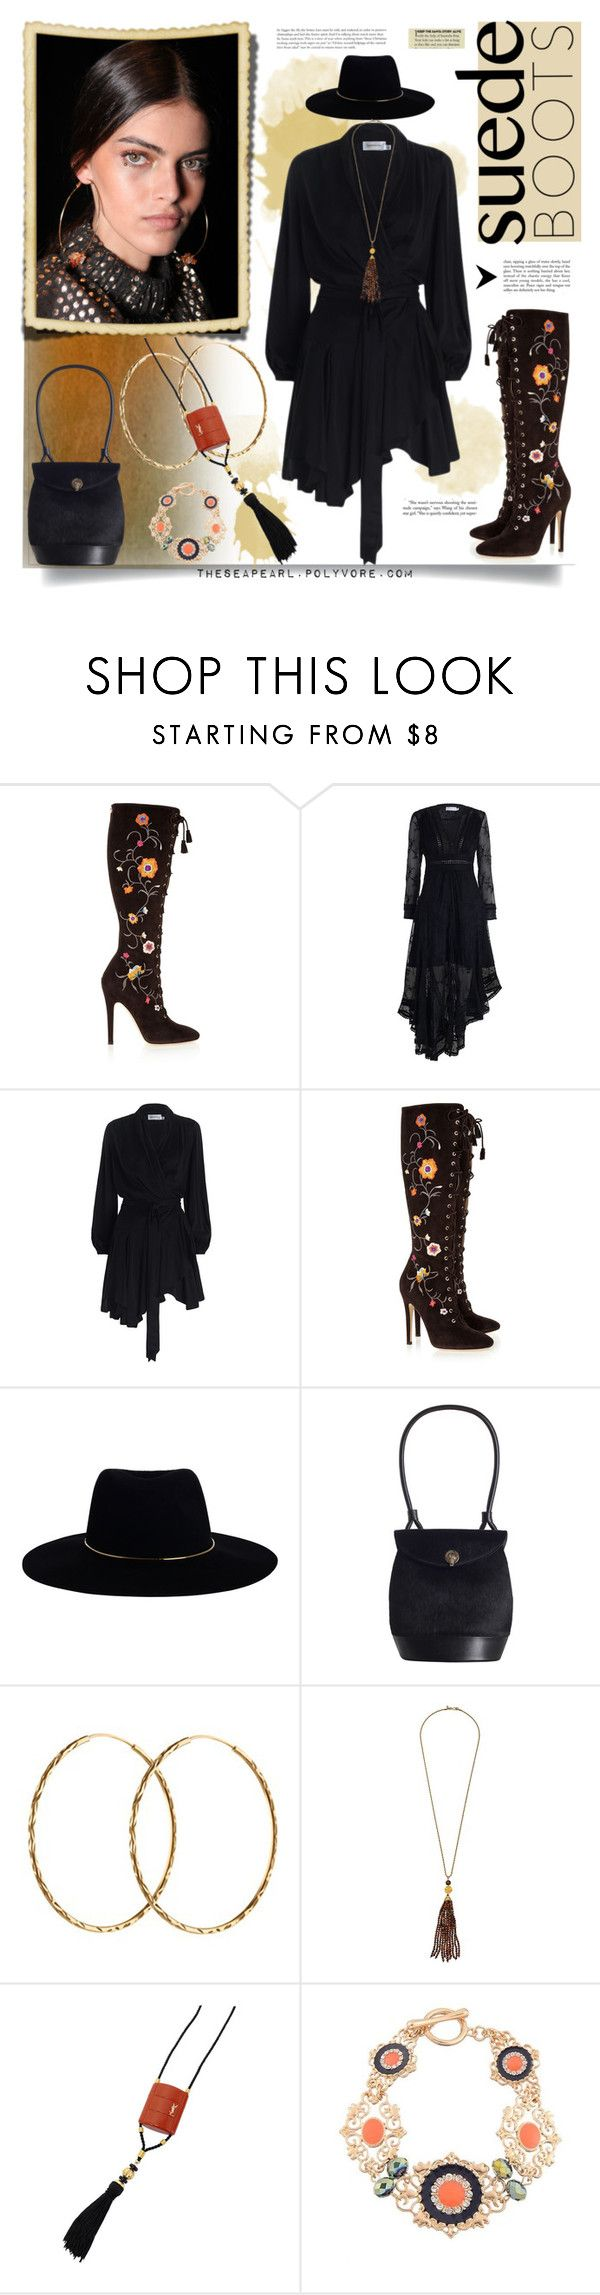 """Corazon Gitano (Song)"" by theseapearl ❤ liked on Polyvore featuring Jimmy Choo, Zimmermann, Pernille Corydon, Kenneth Jay Lane, Yves Saint Laurent, vintage, jimmychoo, zimmerman, vintagejewelry and suedeboots"